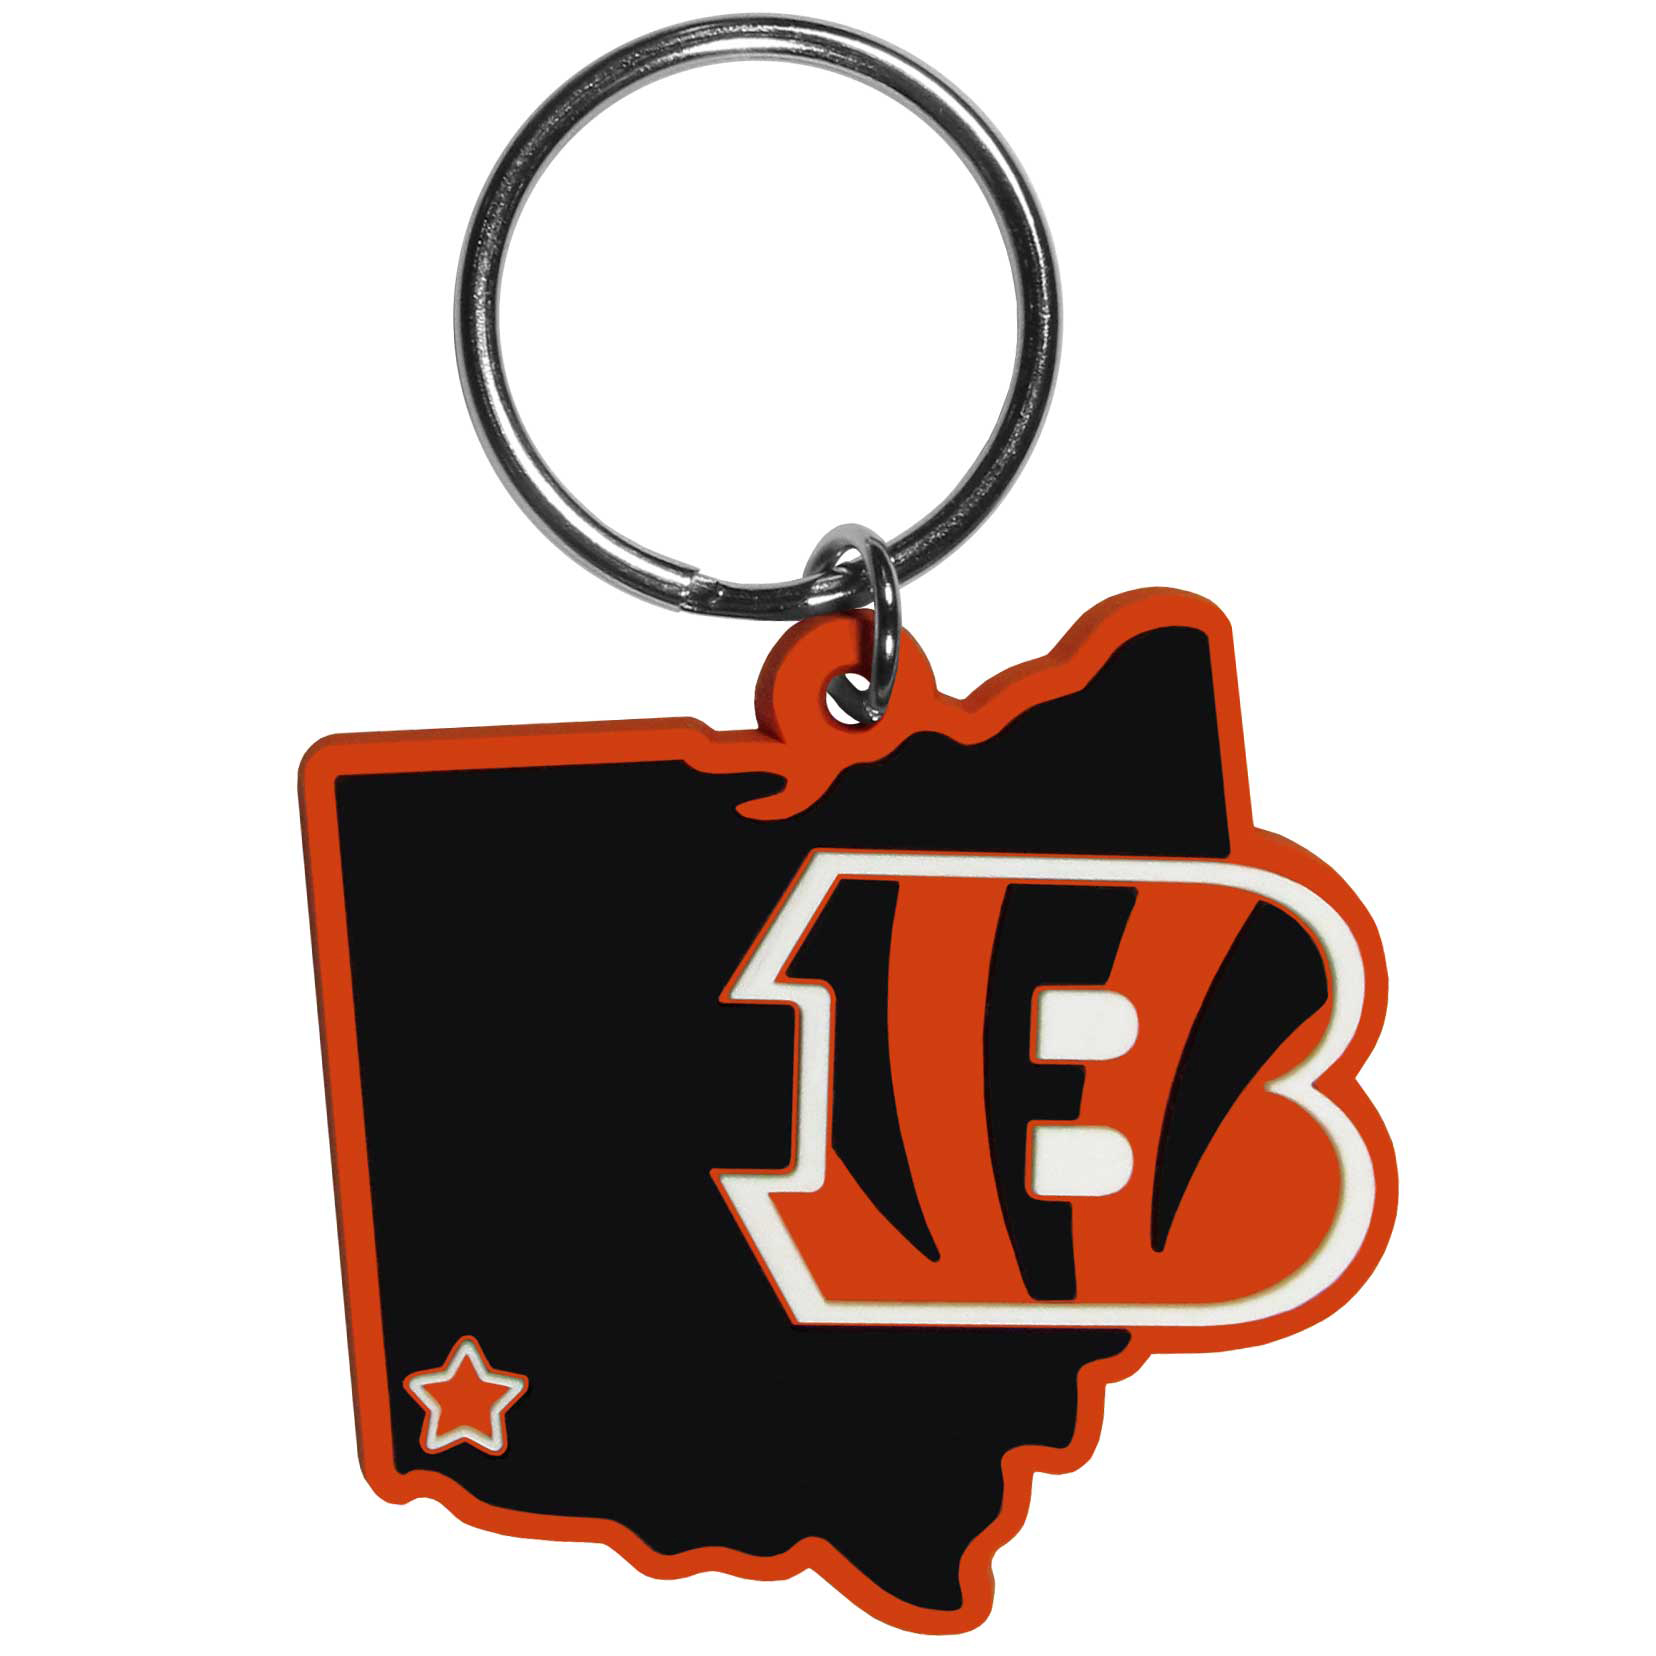 Cincinnati Bengals Home State Flexi Key Chain - Our flexible Cincinnati Bengals key chains are a fun way to carry your team with you. The pliable rubber material is extremely durable and is the layered colors add a great 3D look to the key chain. This is really where quality and a great price meet to create a true fan favorite.